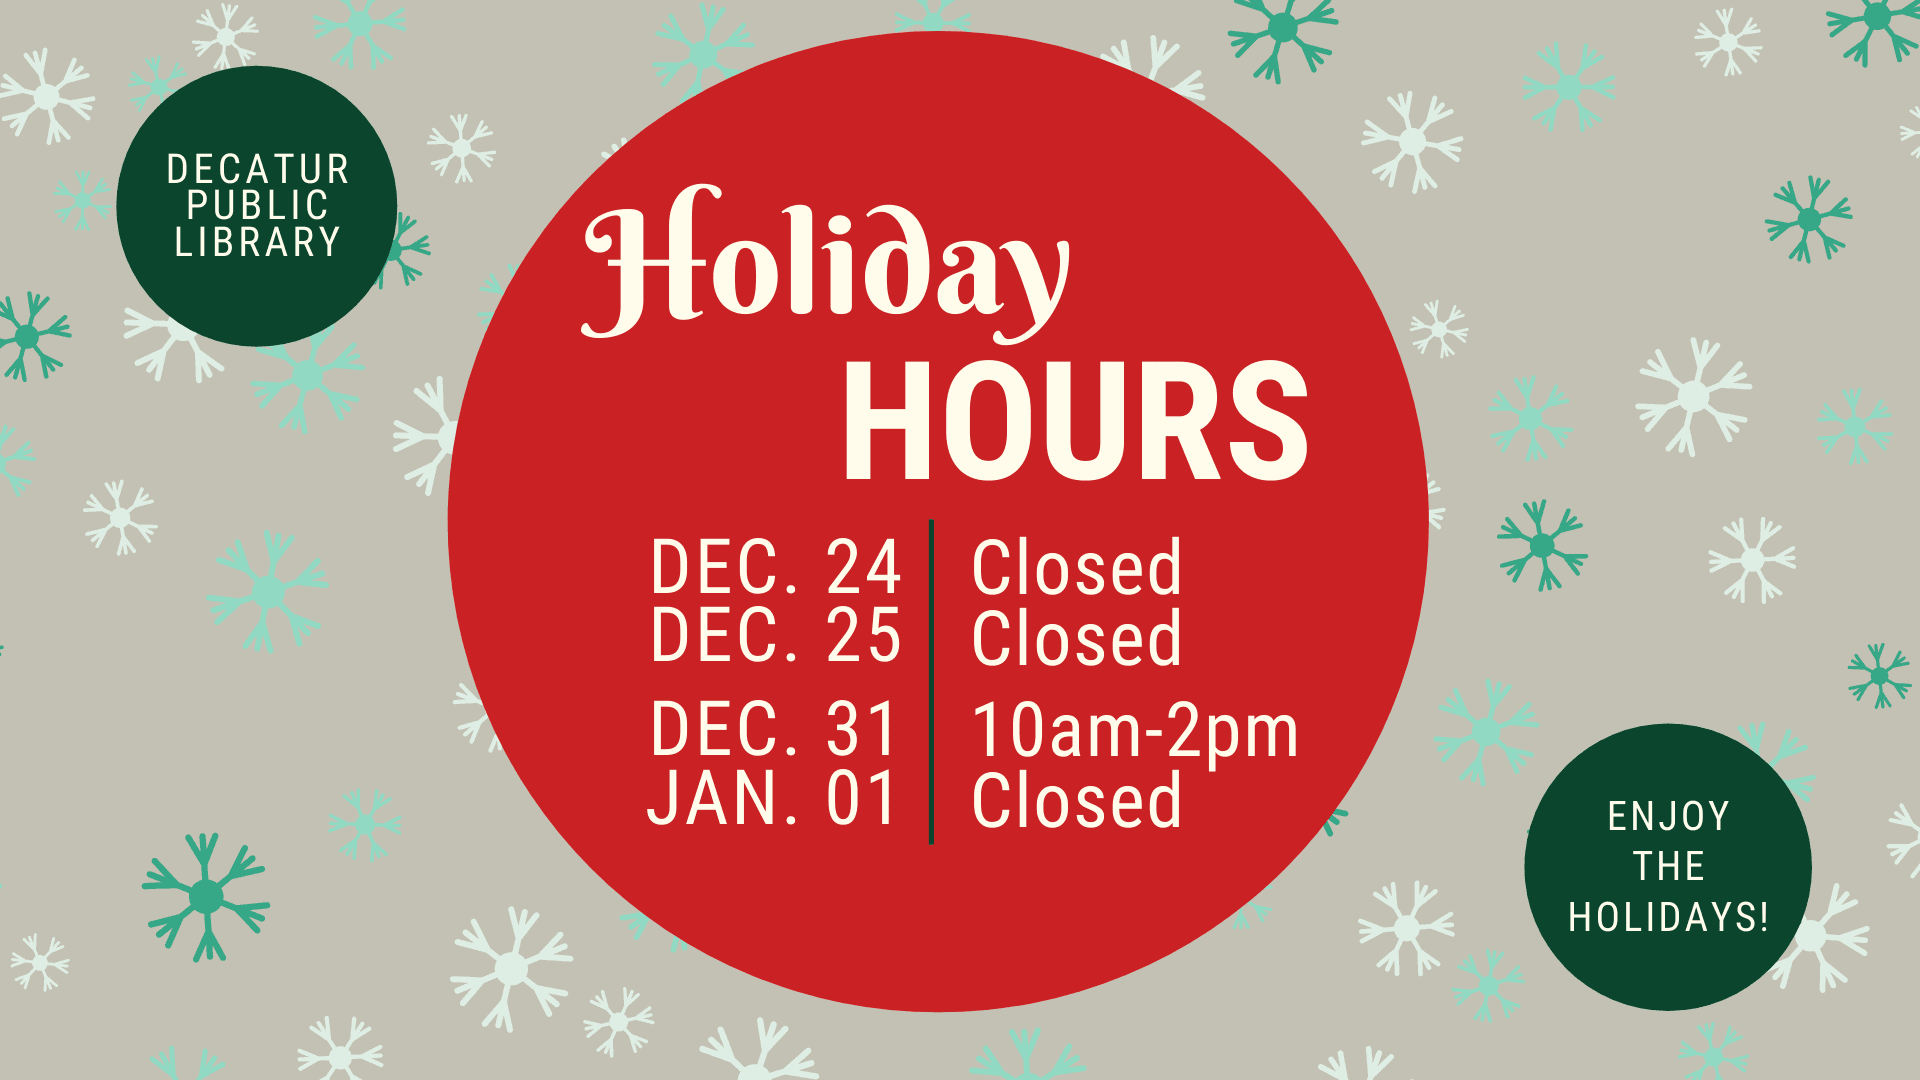 Holiday Closings/Hours